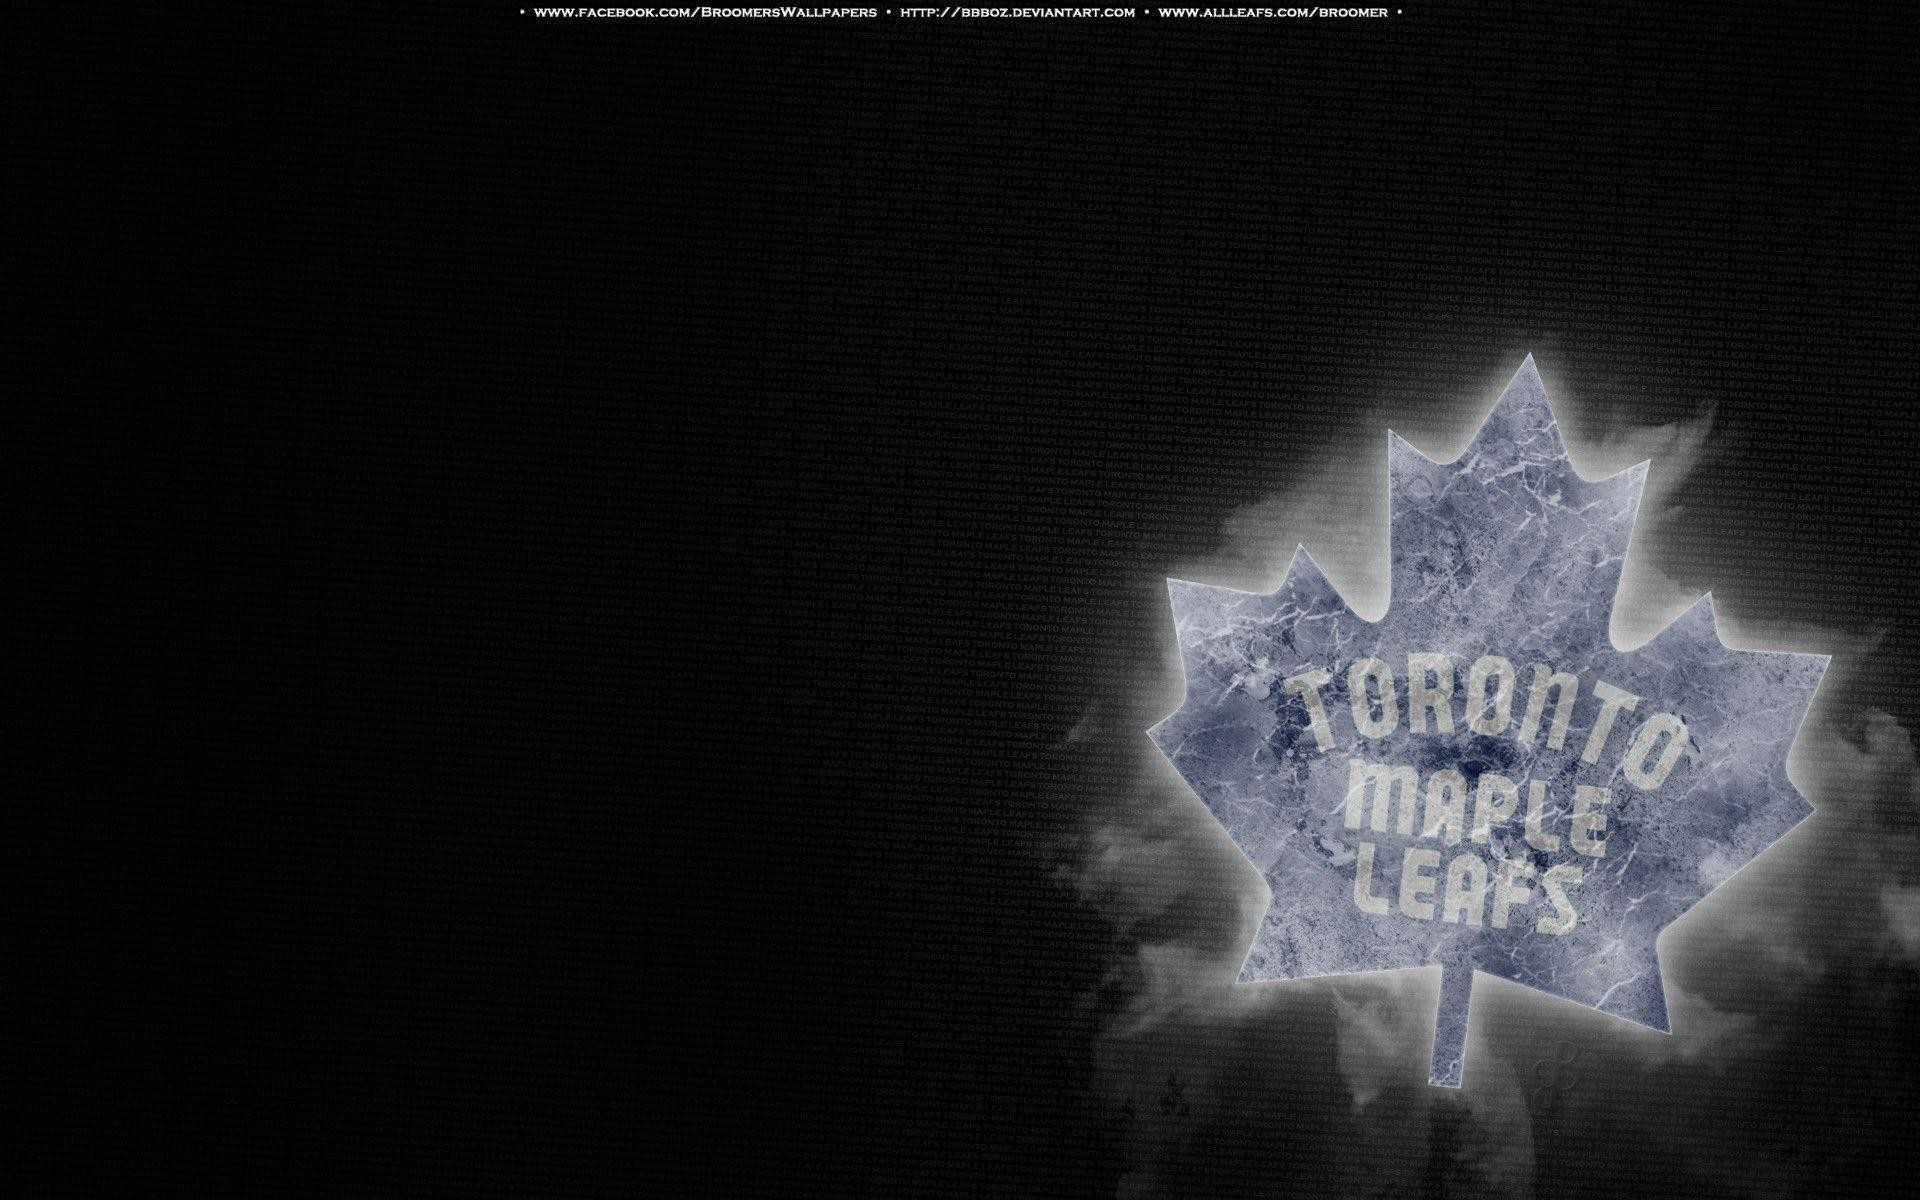 1920x1200 Toronto Maple Leafs wallpapers | Toronto Maple Leafs background .